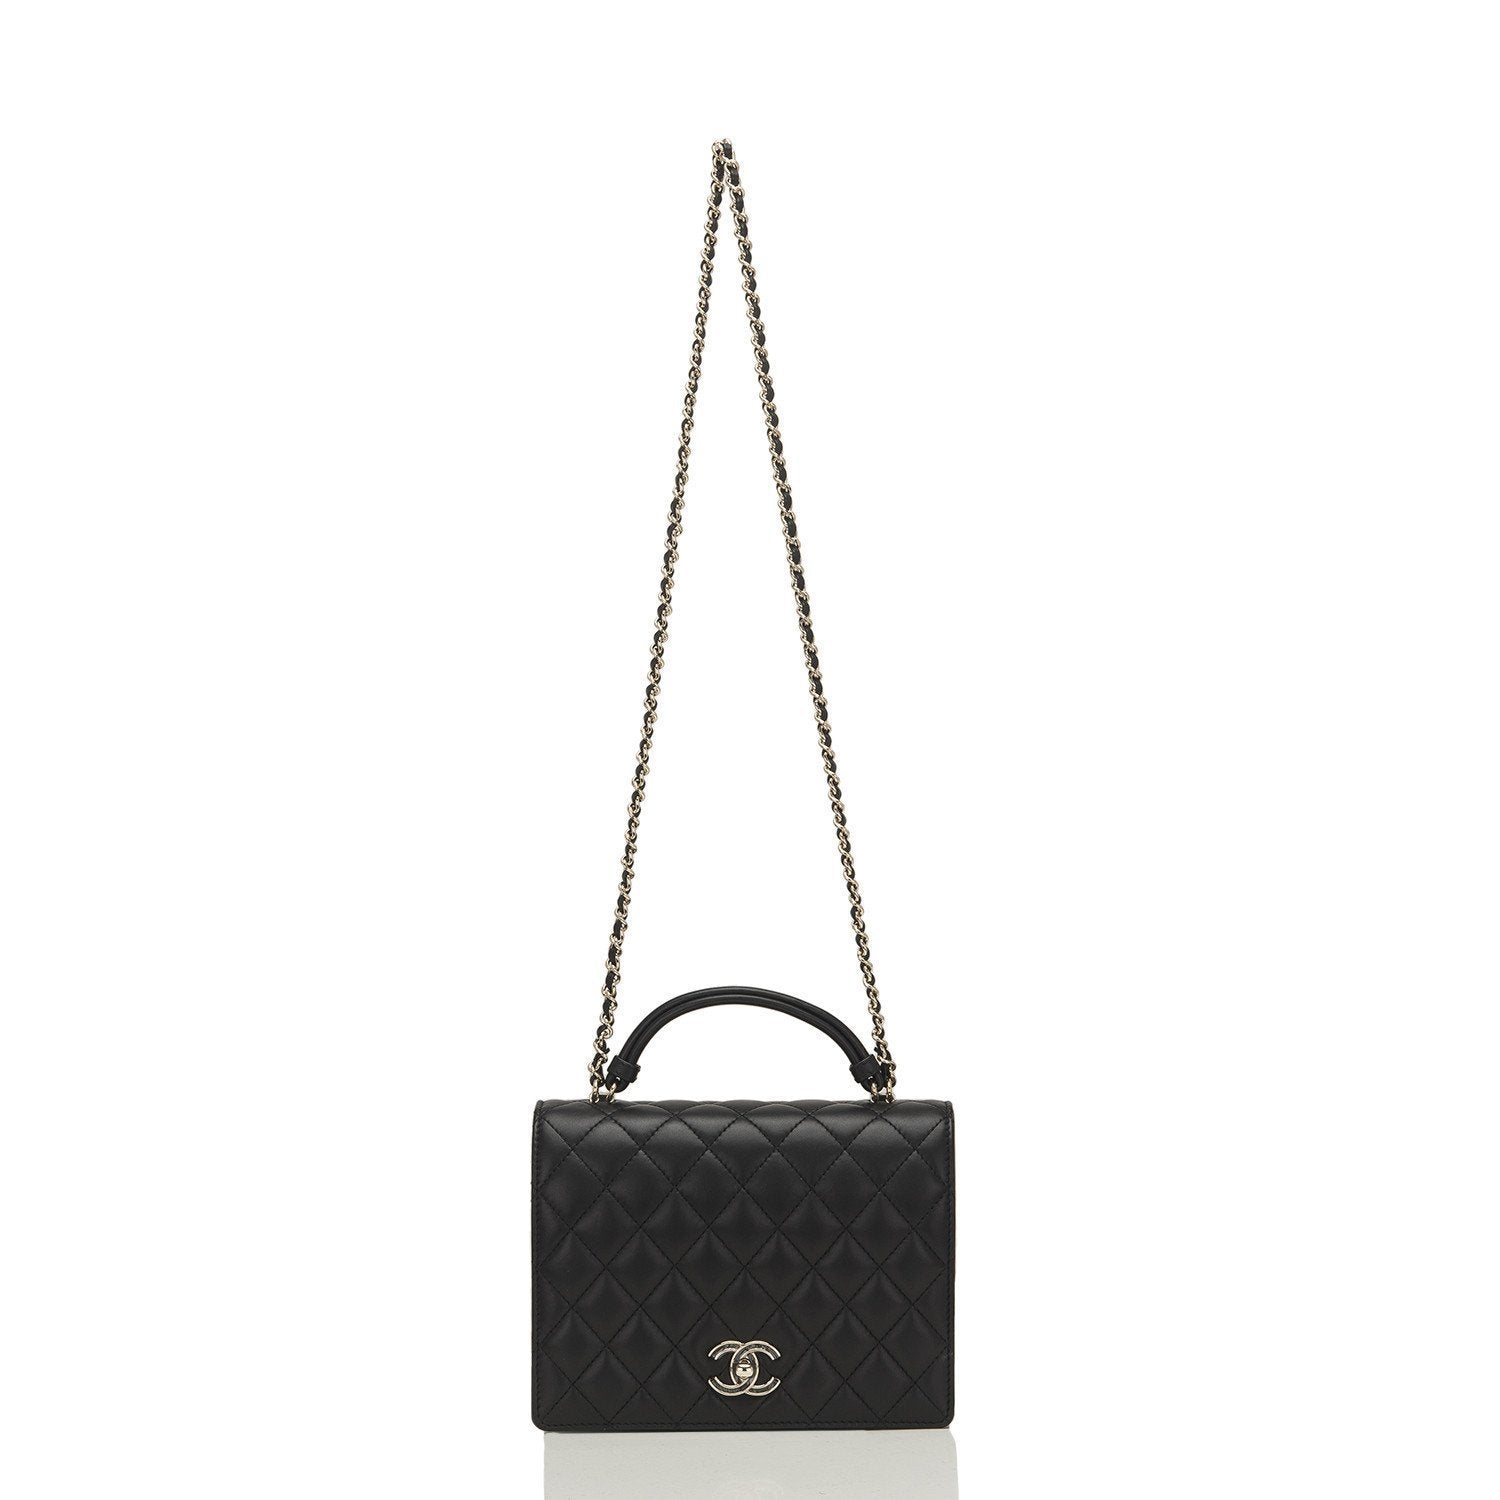 Chanel Black Lambskin Handle Tied Flap Bag Handbags